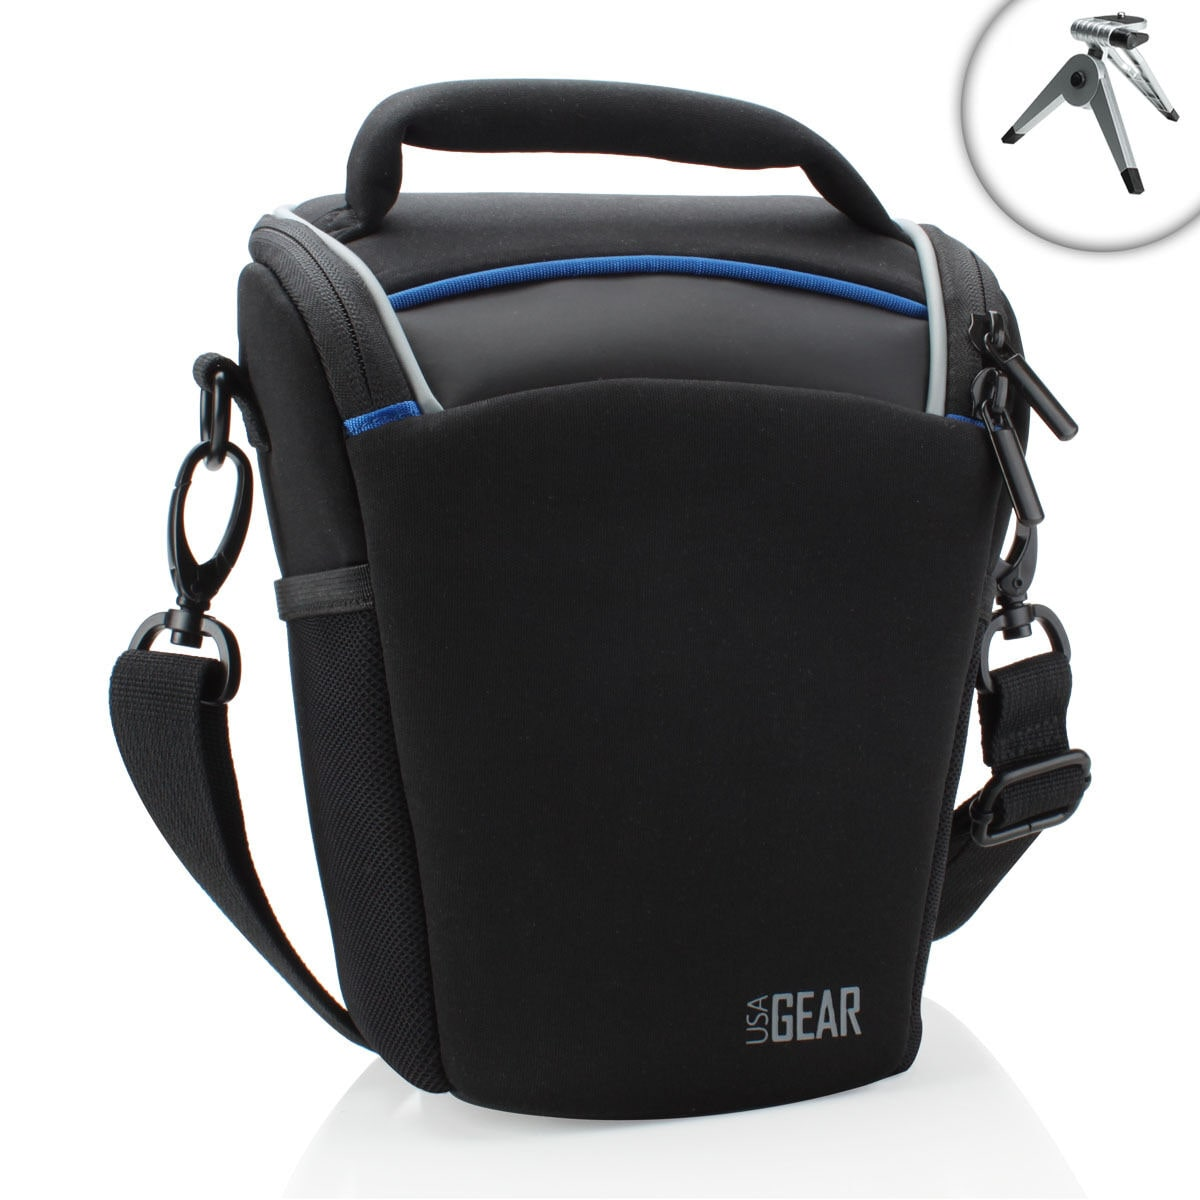 USA Gear Portable Top Loading dSLR Camera Bag for Nikon Digital Cameras